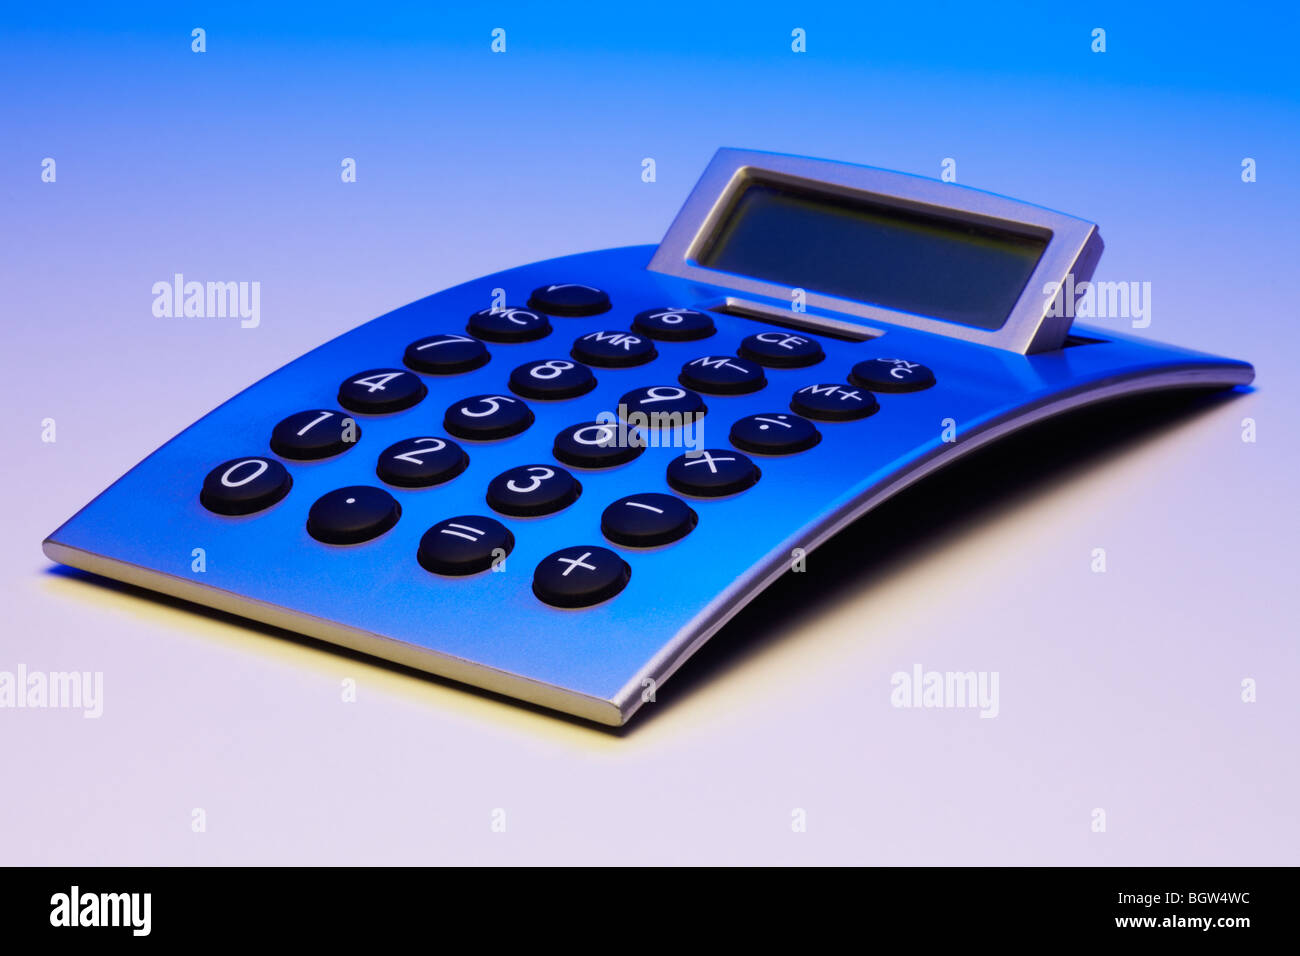 Silver / Blue Curved Calculator - Stock Image